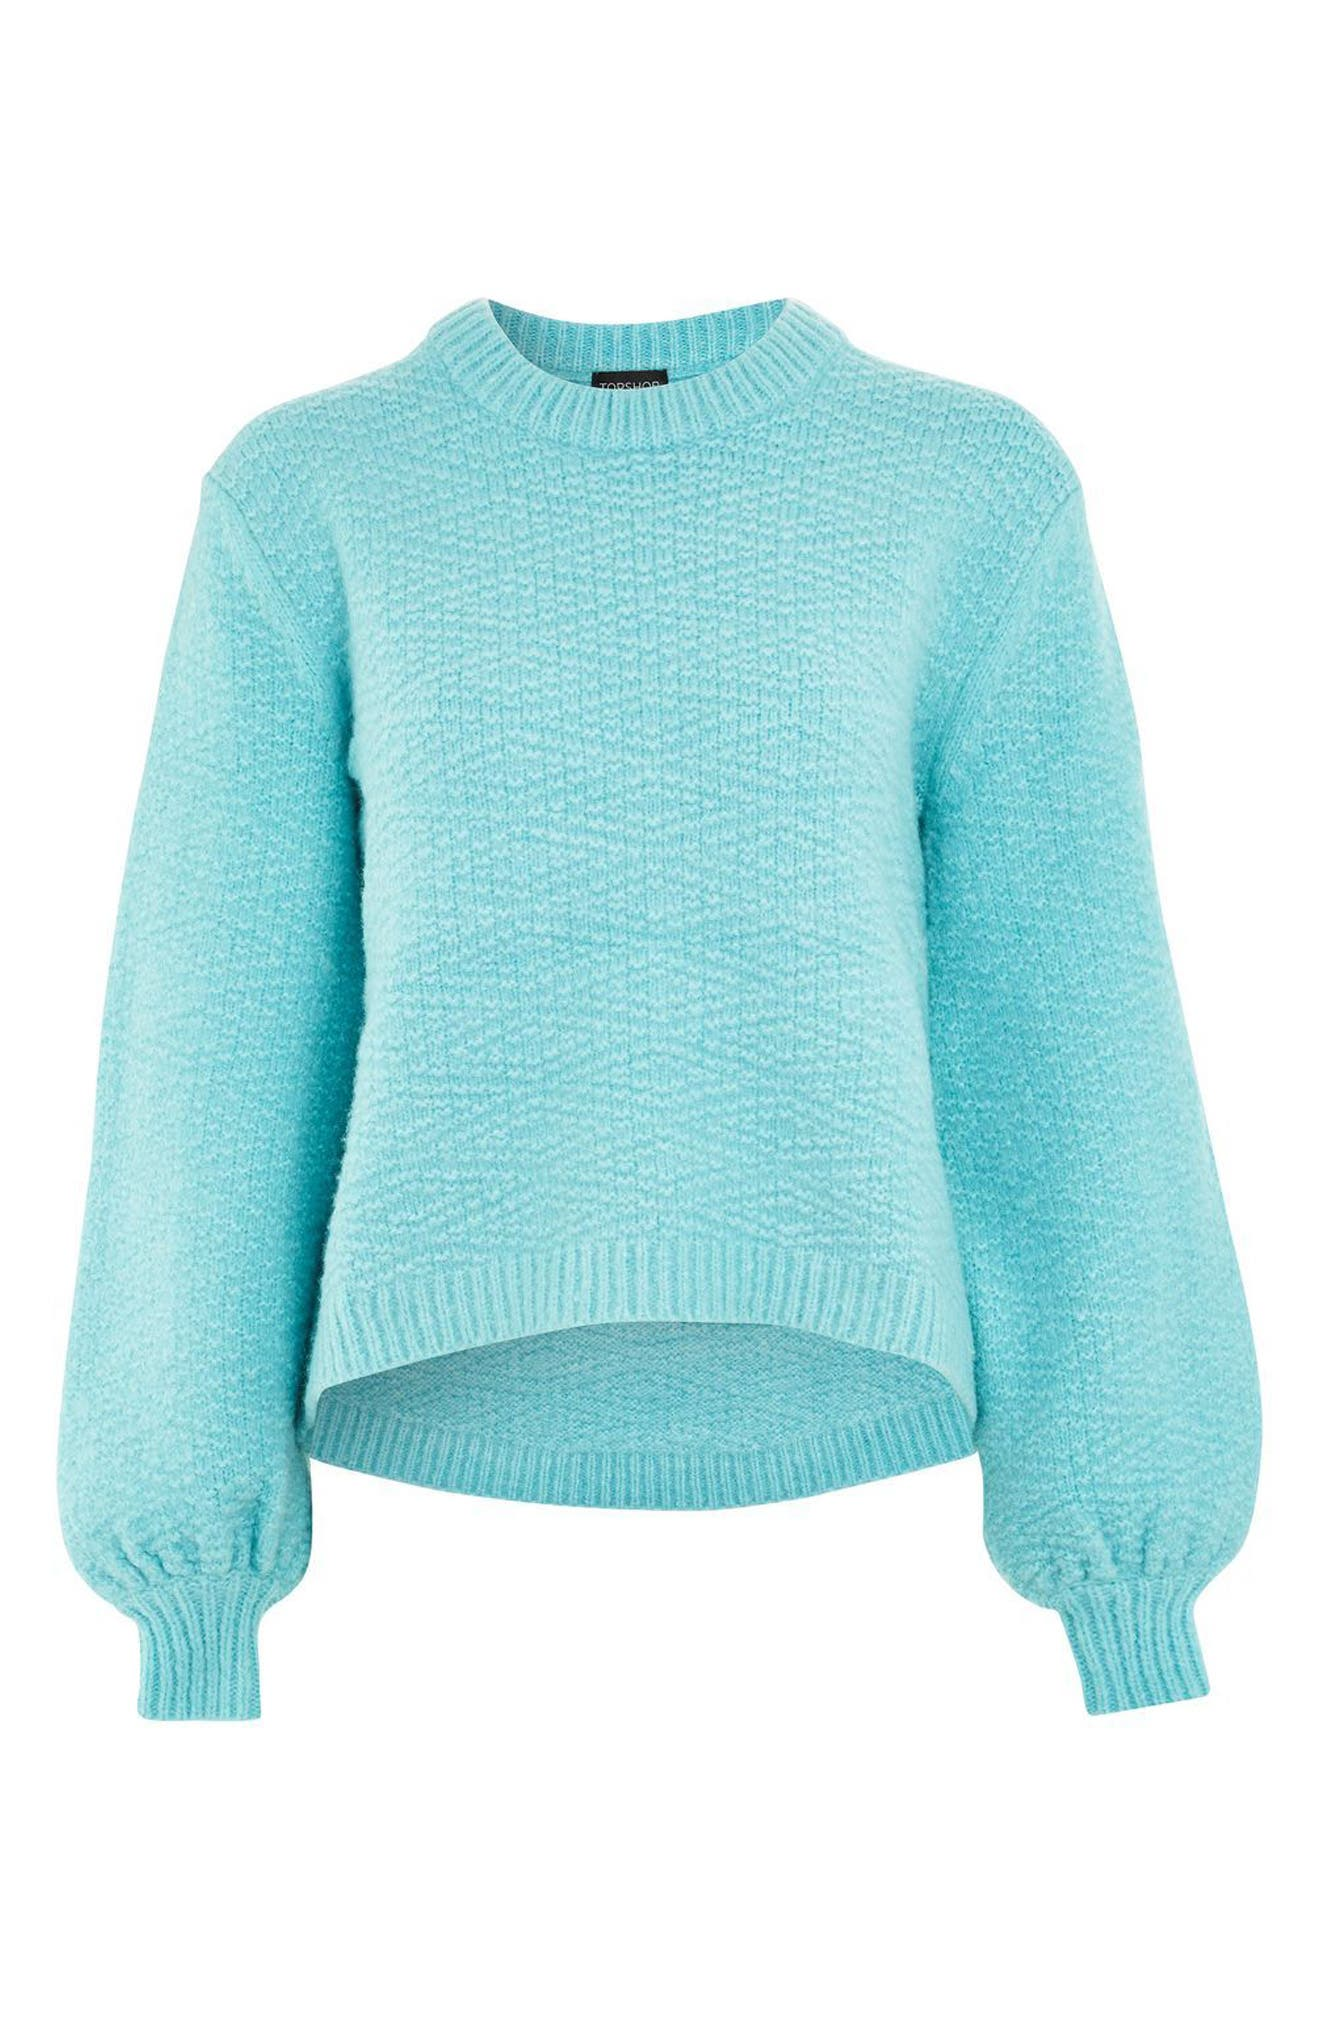 Textured Balloon Sleeve Sweater,                             Alternate thumbnail 4, color,                             Turquoise